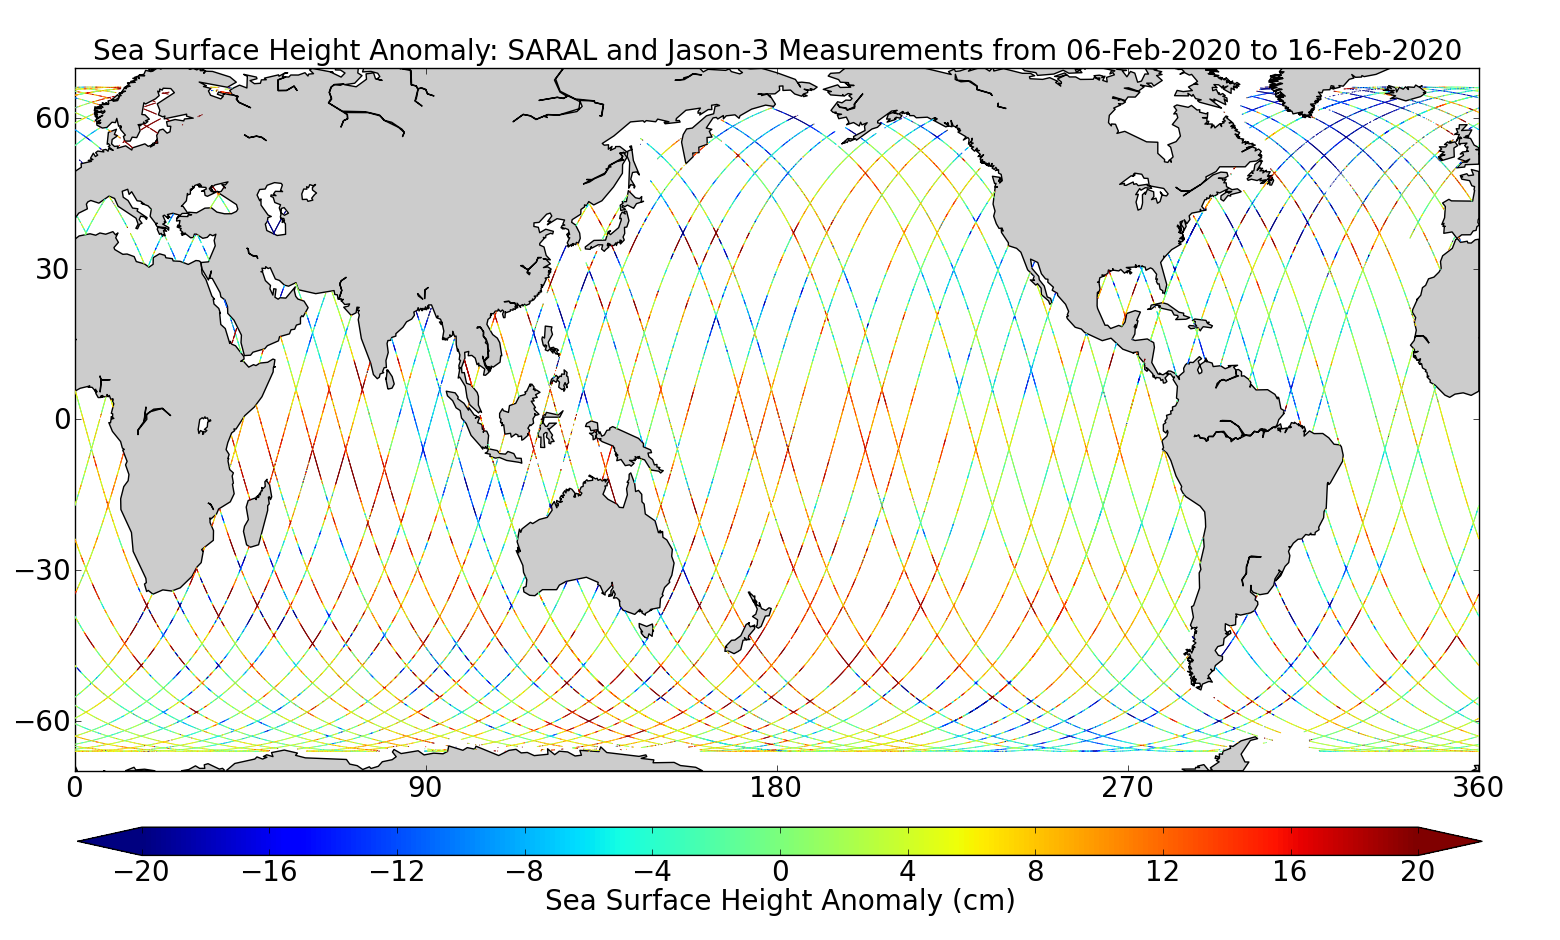 Sea Surface Height Anomaly: SARAL and Jason-3 Measurements from 06-Feb-2020 to 16-Feb-2020